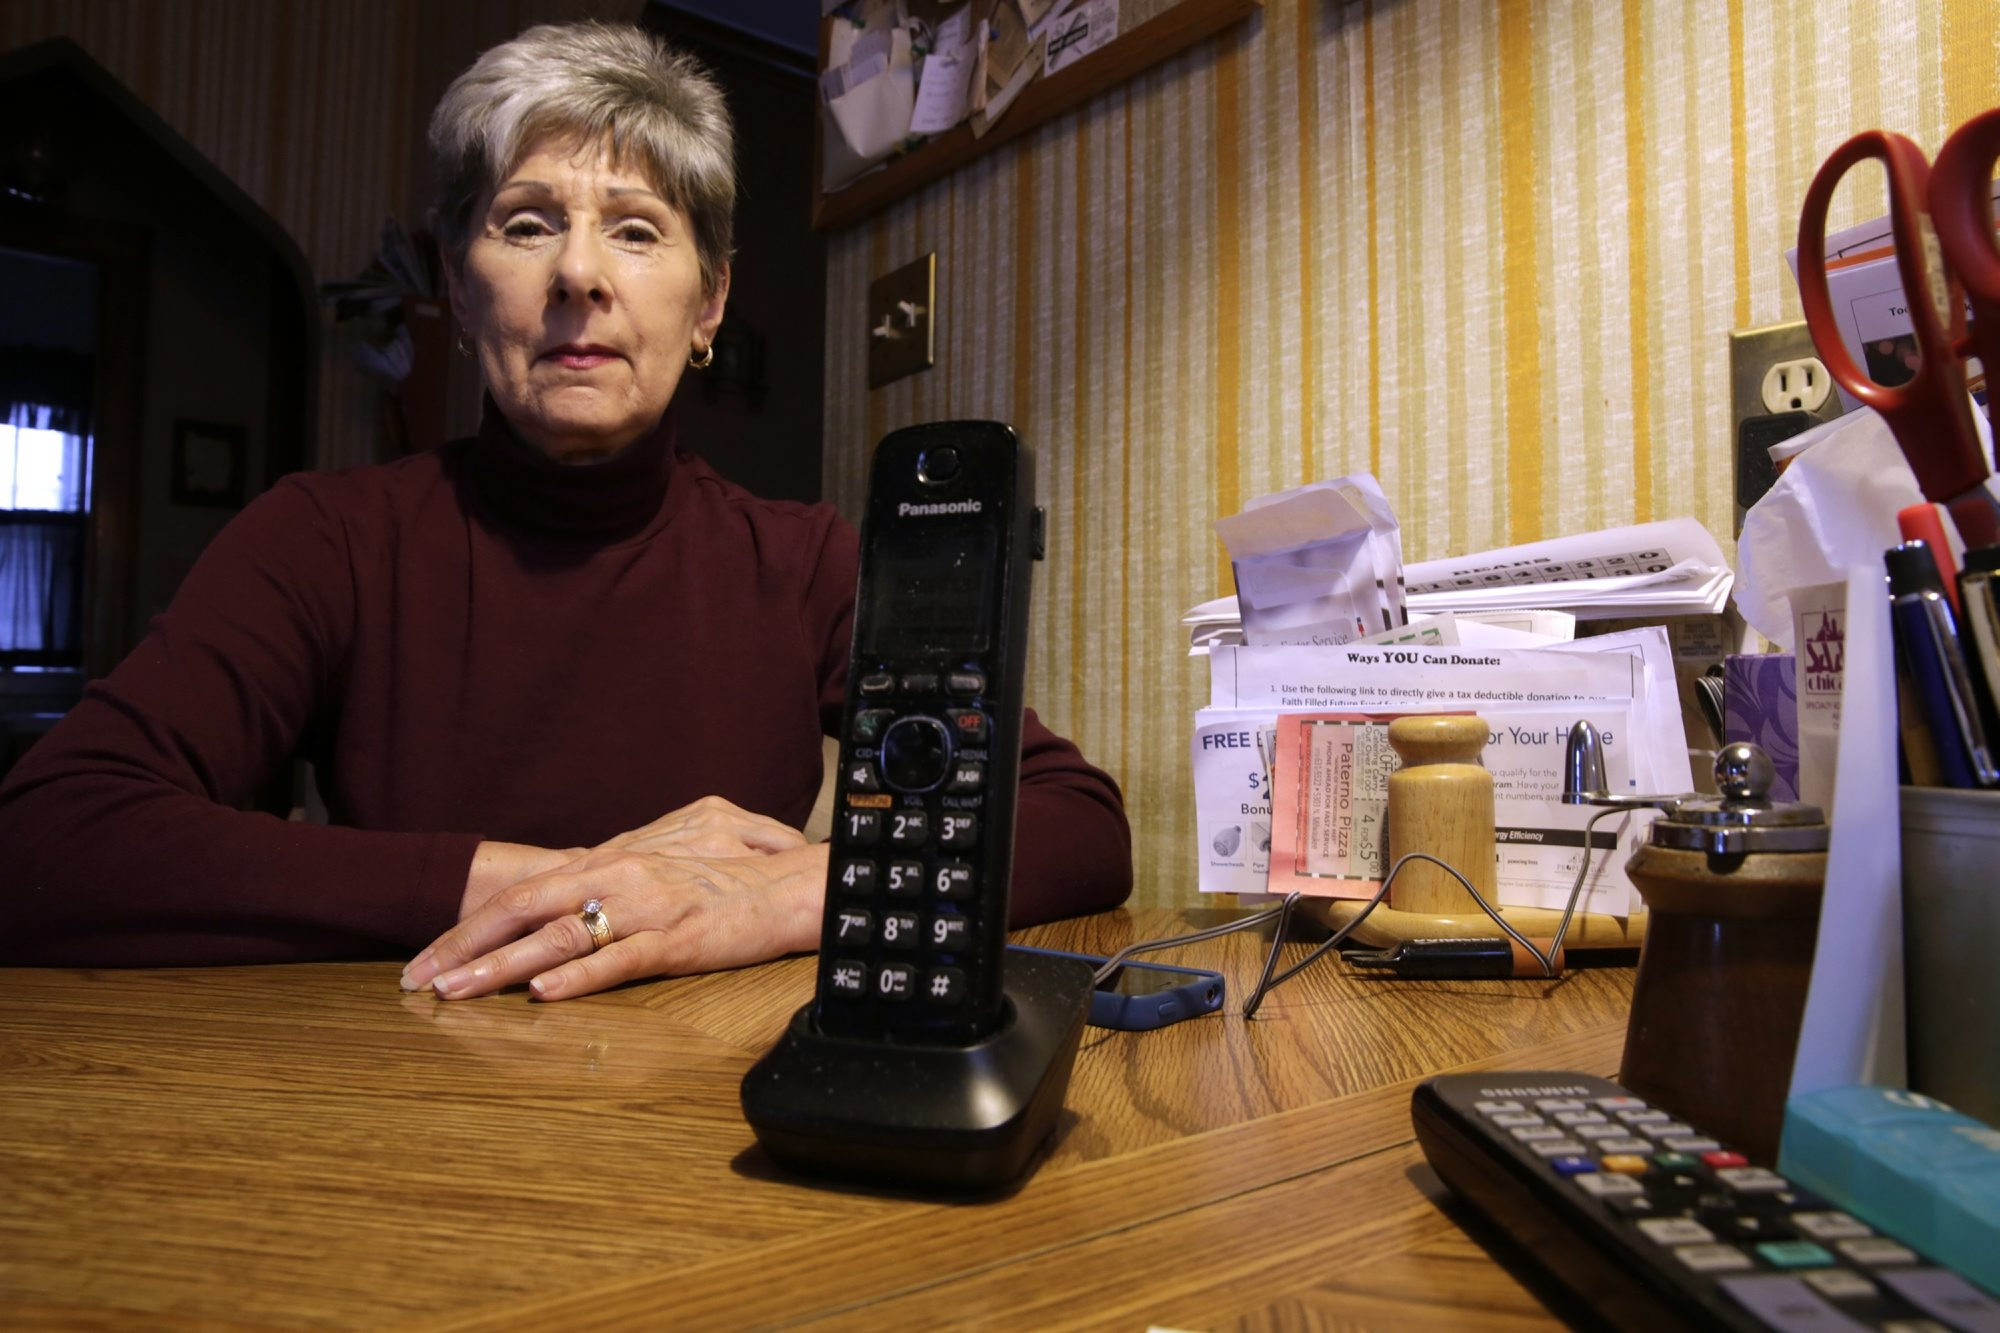 Mary Teister, 72, would like to keep her landline phone. Her husband needs it for his pacemaker, and she says she always knows where her phone is in an emergency.